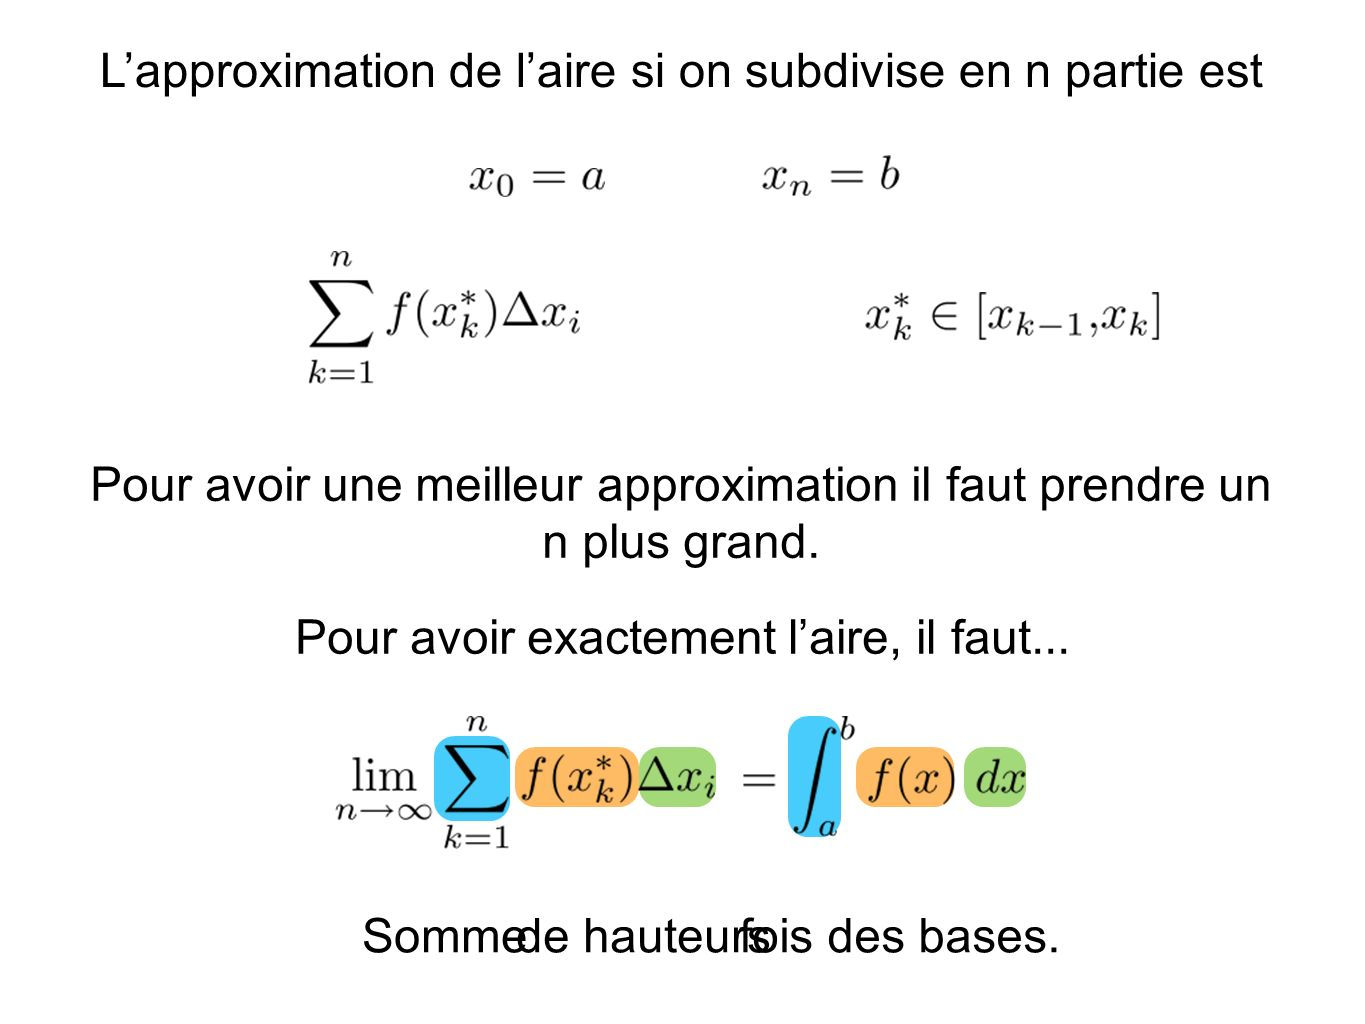 L'approximation de l'aire si on subdivise en n partie est